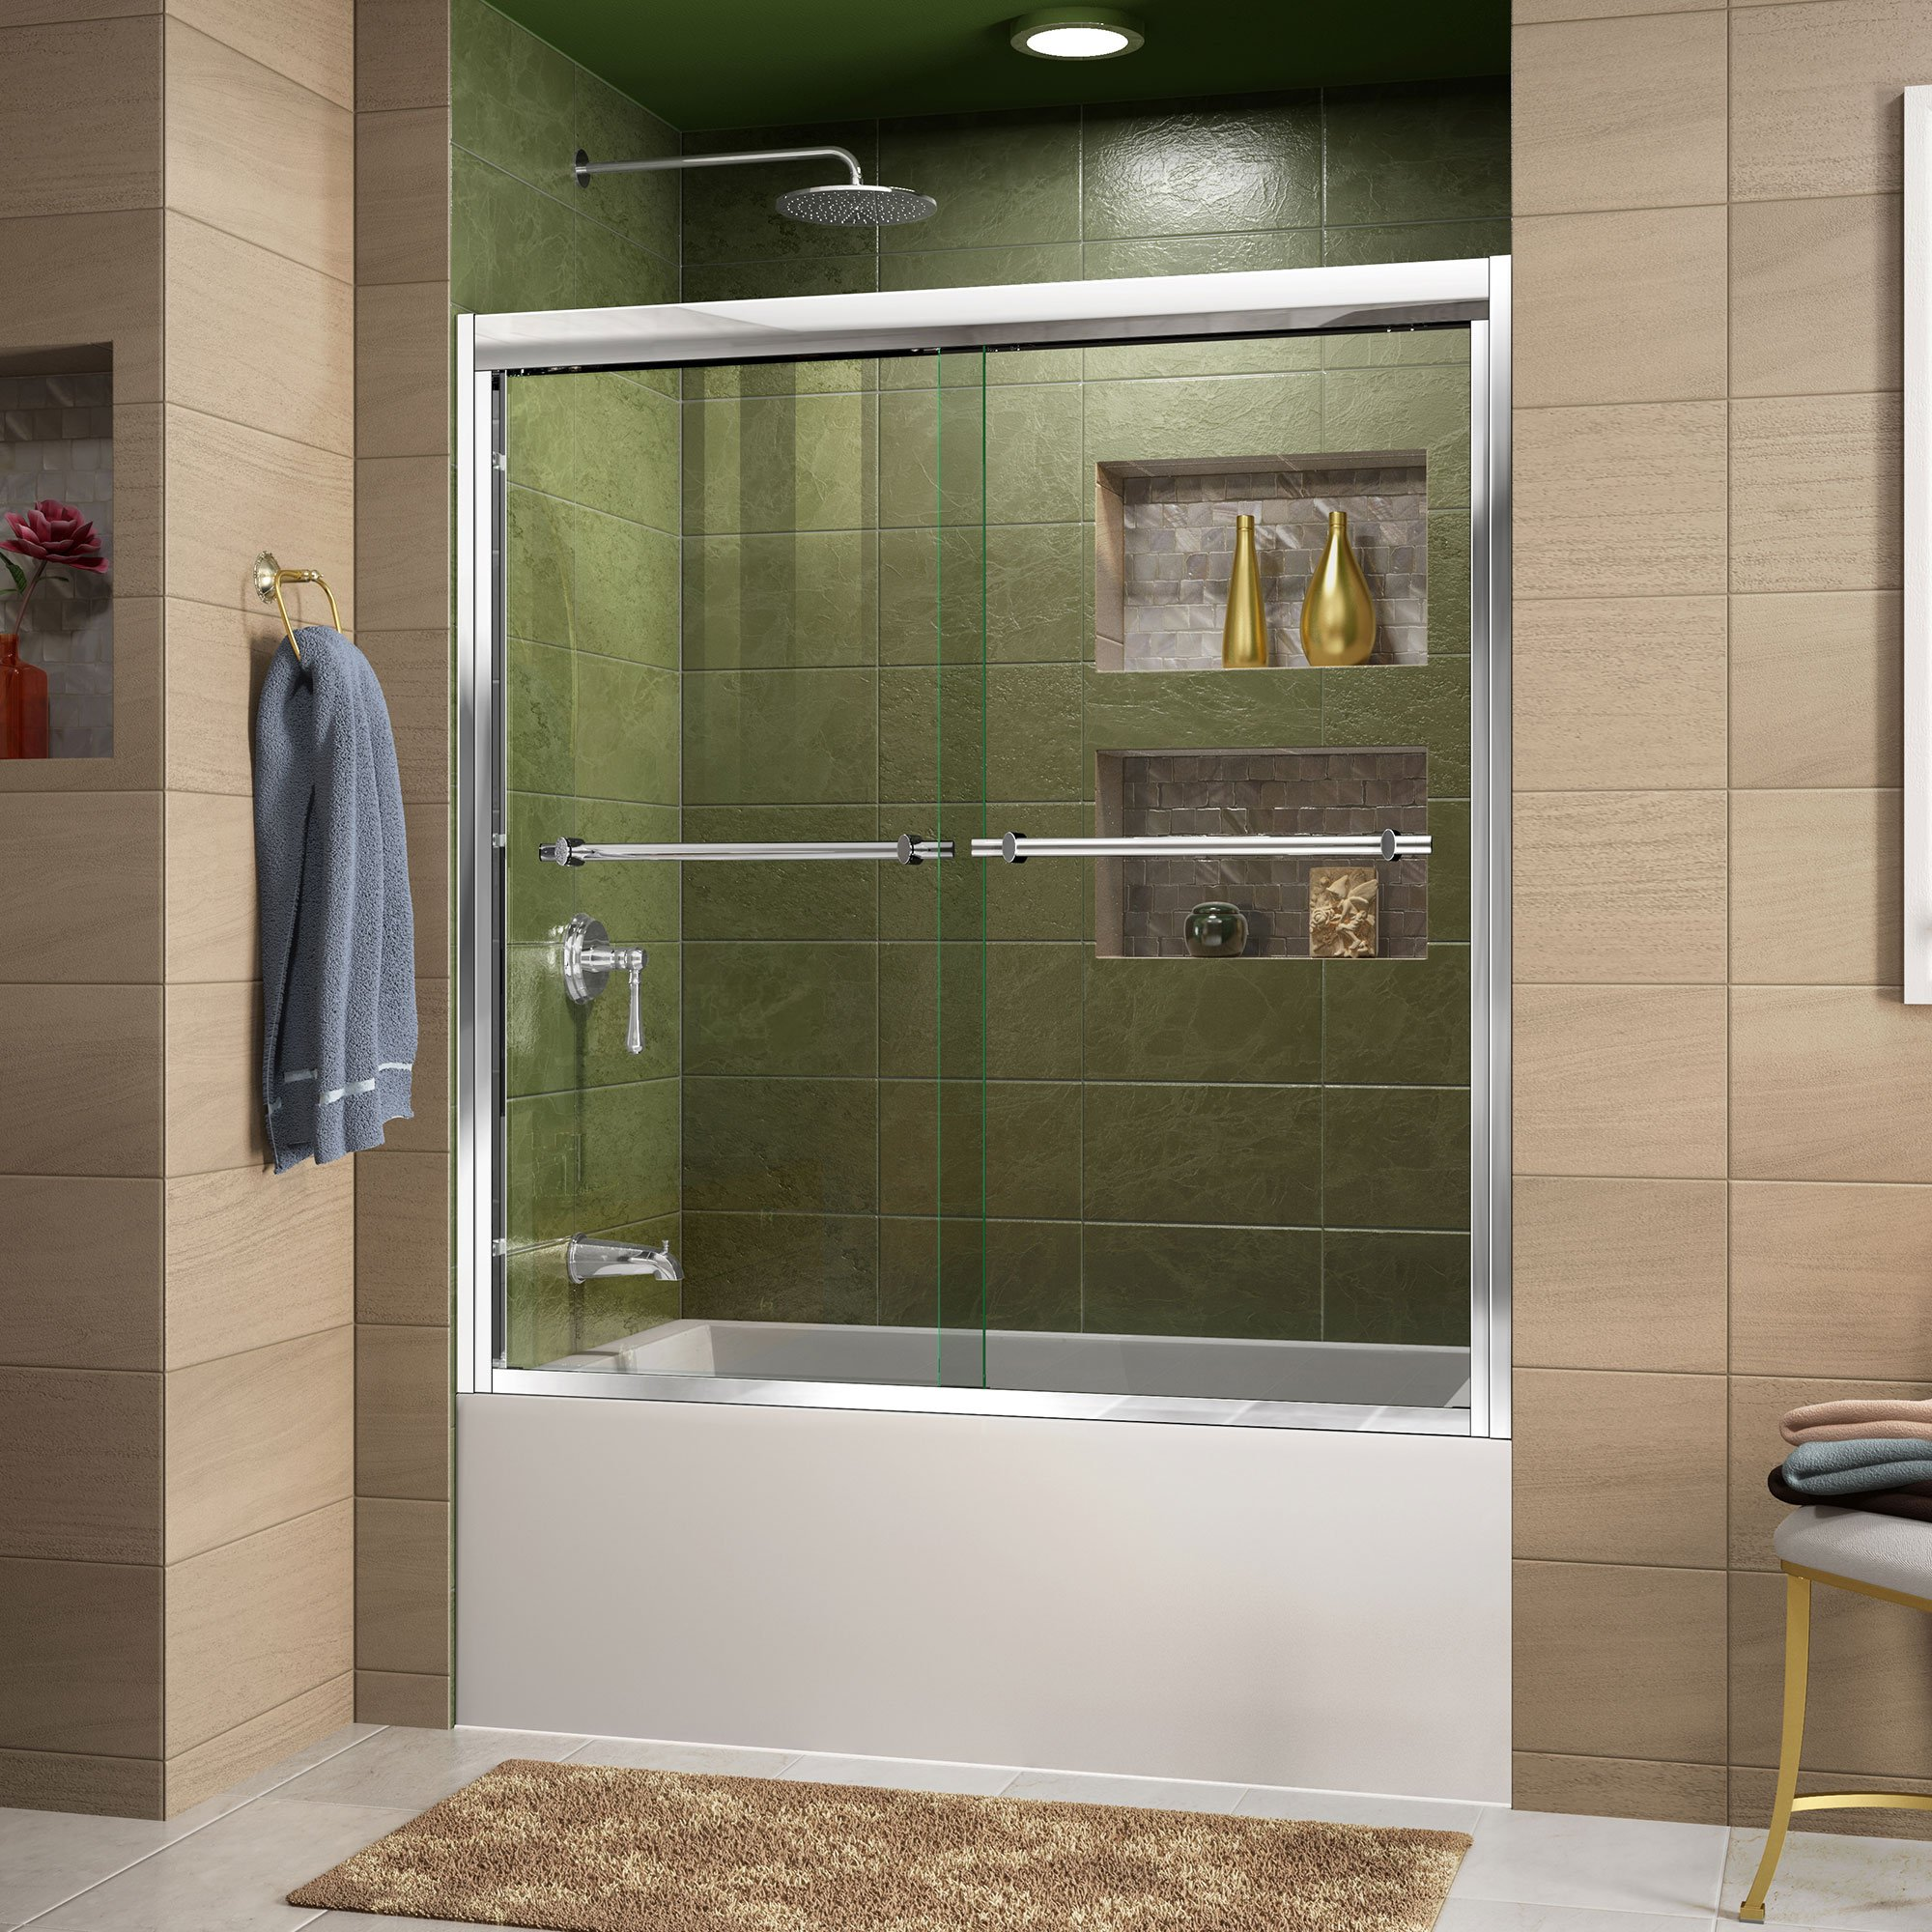 DreamLine Duet 56-59 in. Width, Frameless Bypass Sliding Tub Door, 5/16'' Glass, Chrome Finish by DreamLine